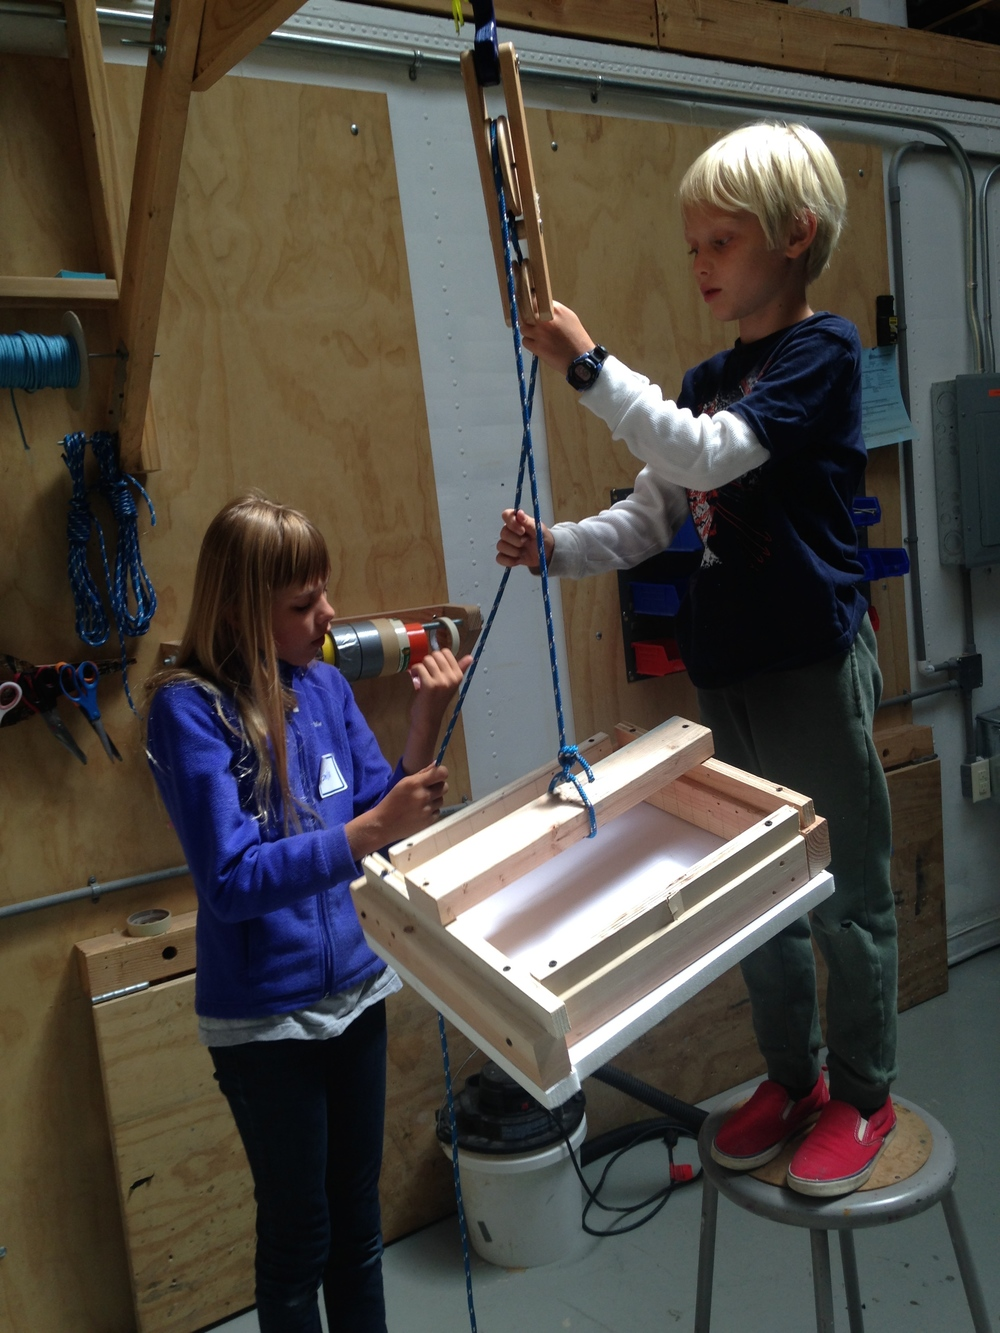 Emilia and Sebastian found a wooden pulley they liked, and built a dumbwaiter.